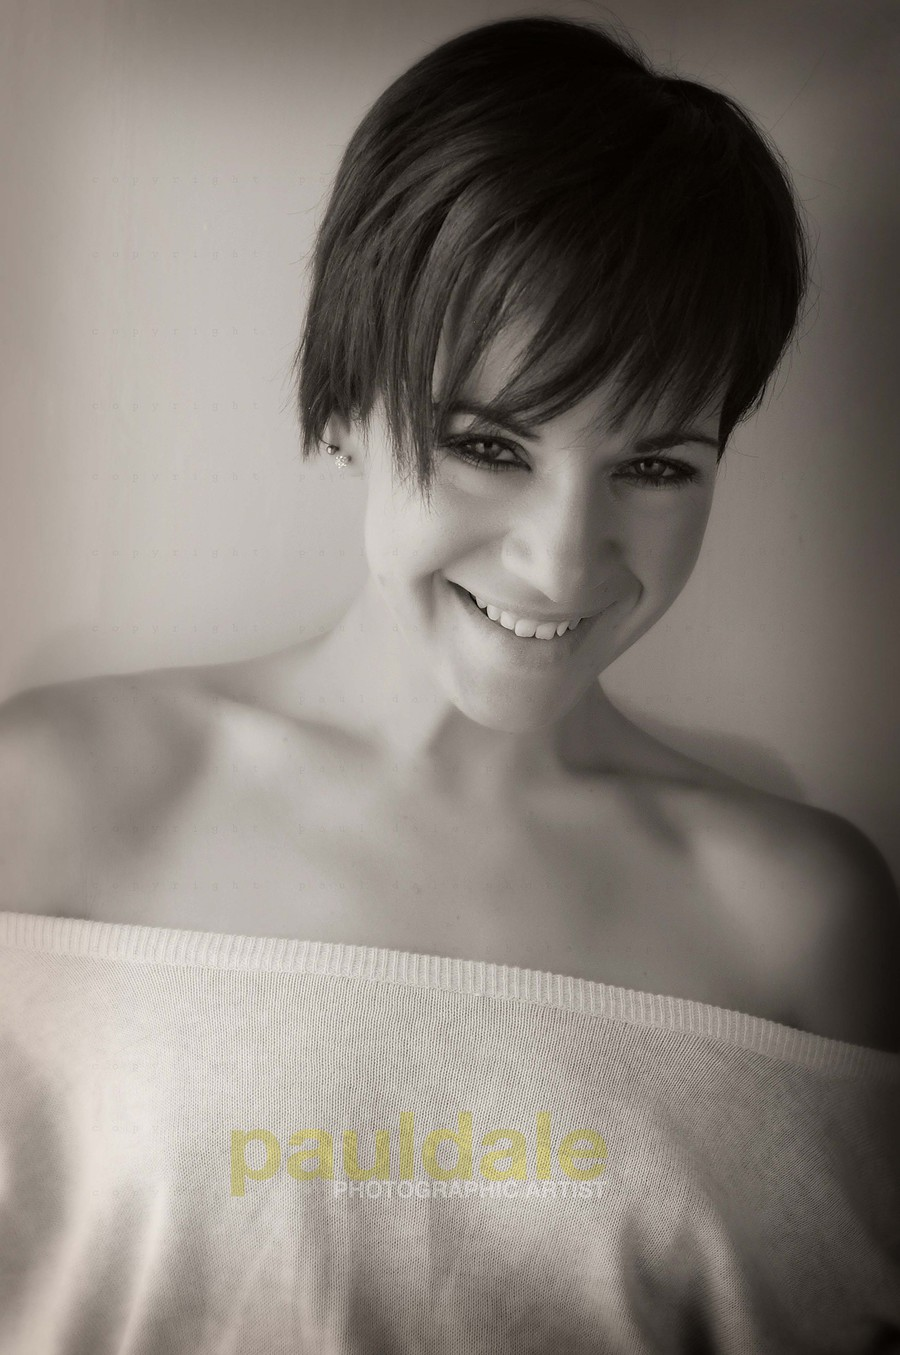 Smile :) / Photography by Paul Dale, Model Ninabean / Uploaded 14th July 2014 @ 07:44 AM